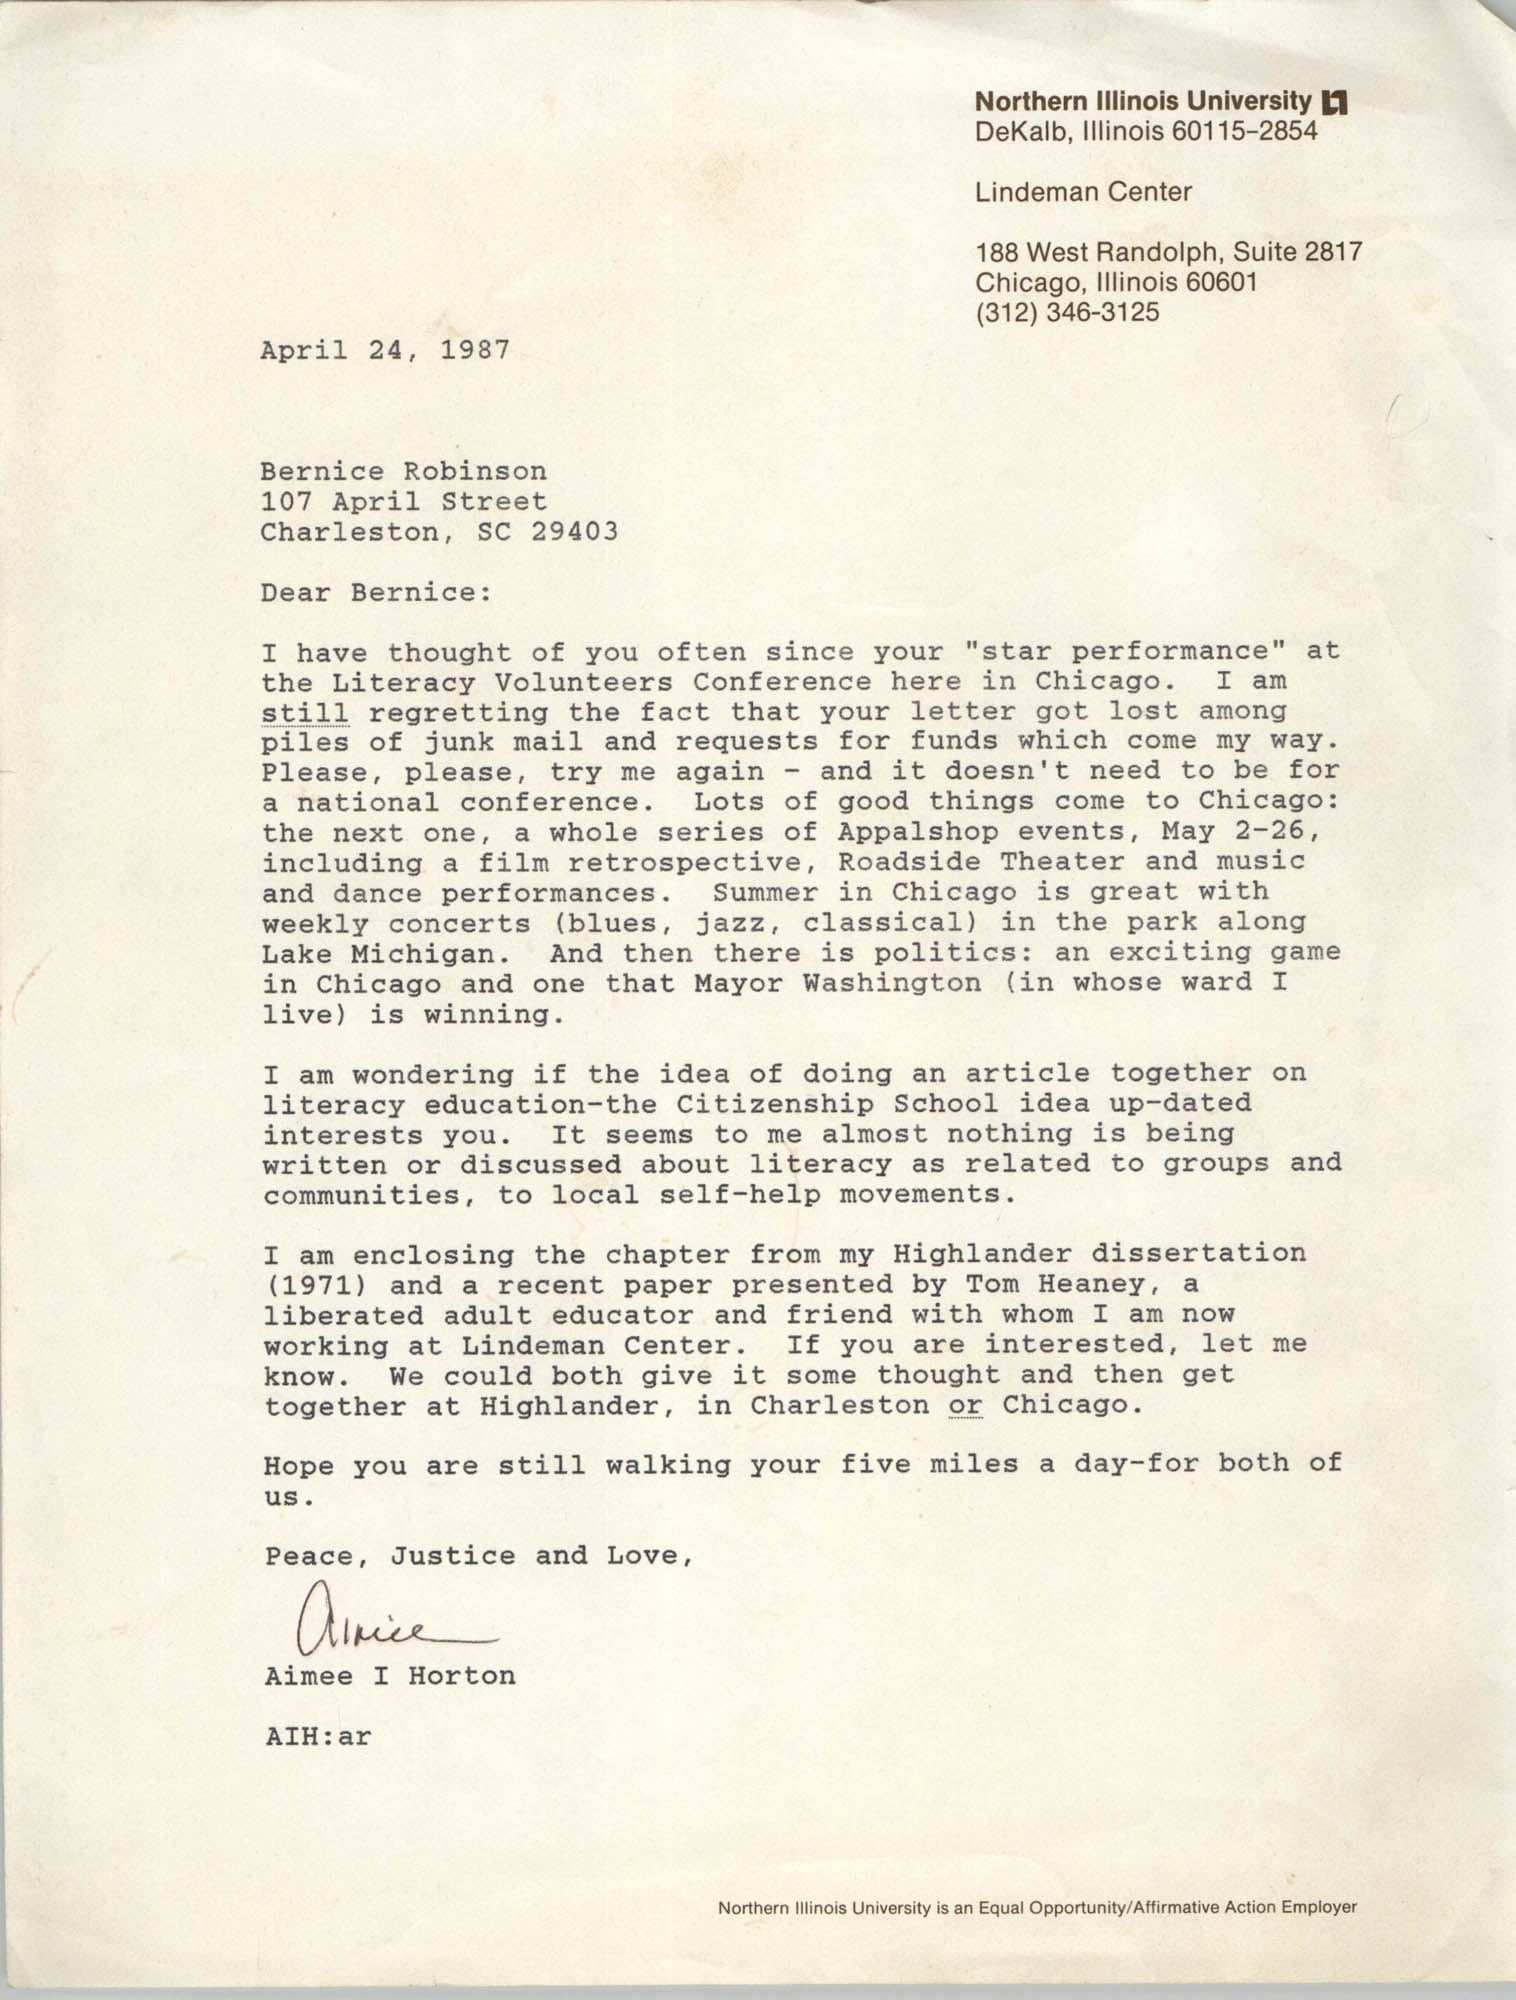 Letter from Aimee I. Horton to Bernice Robinson, April 4, 1987